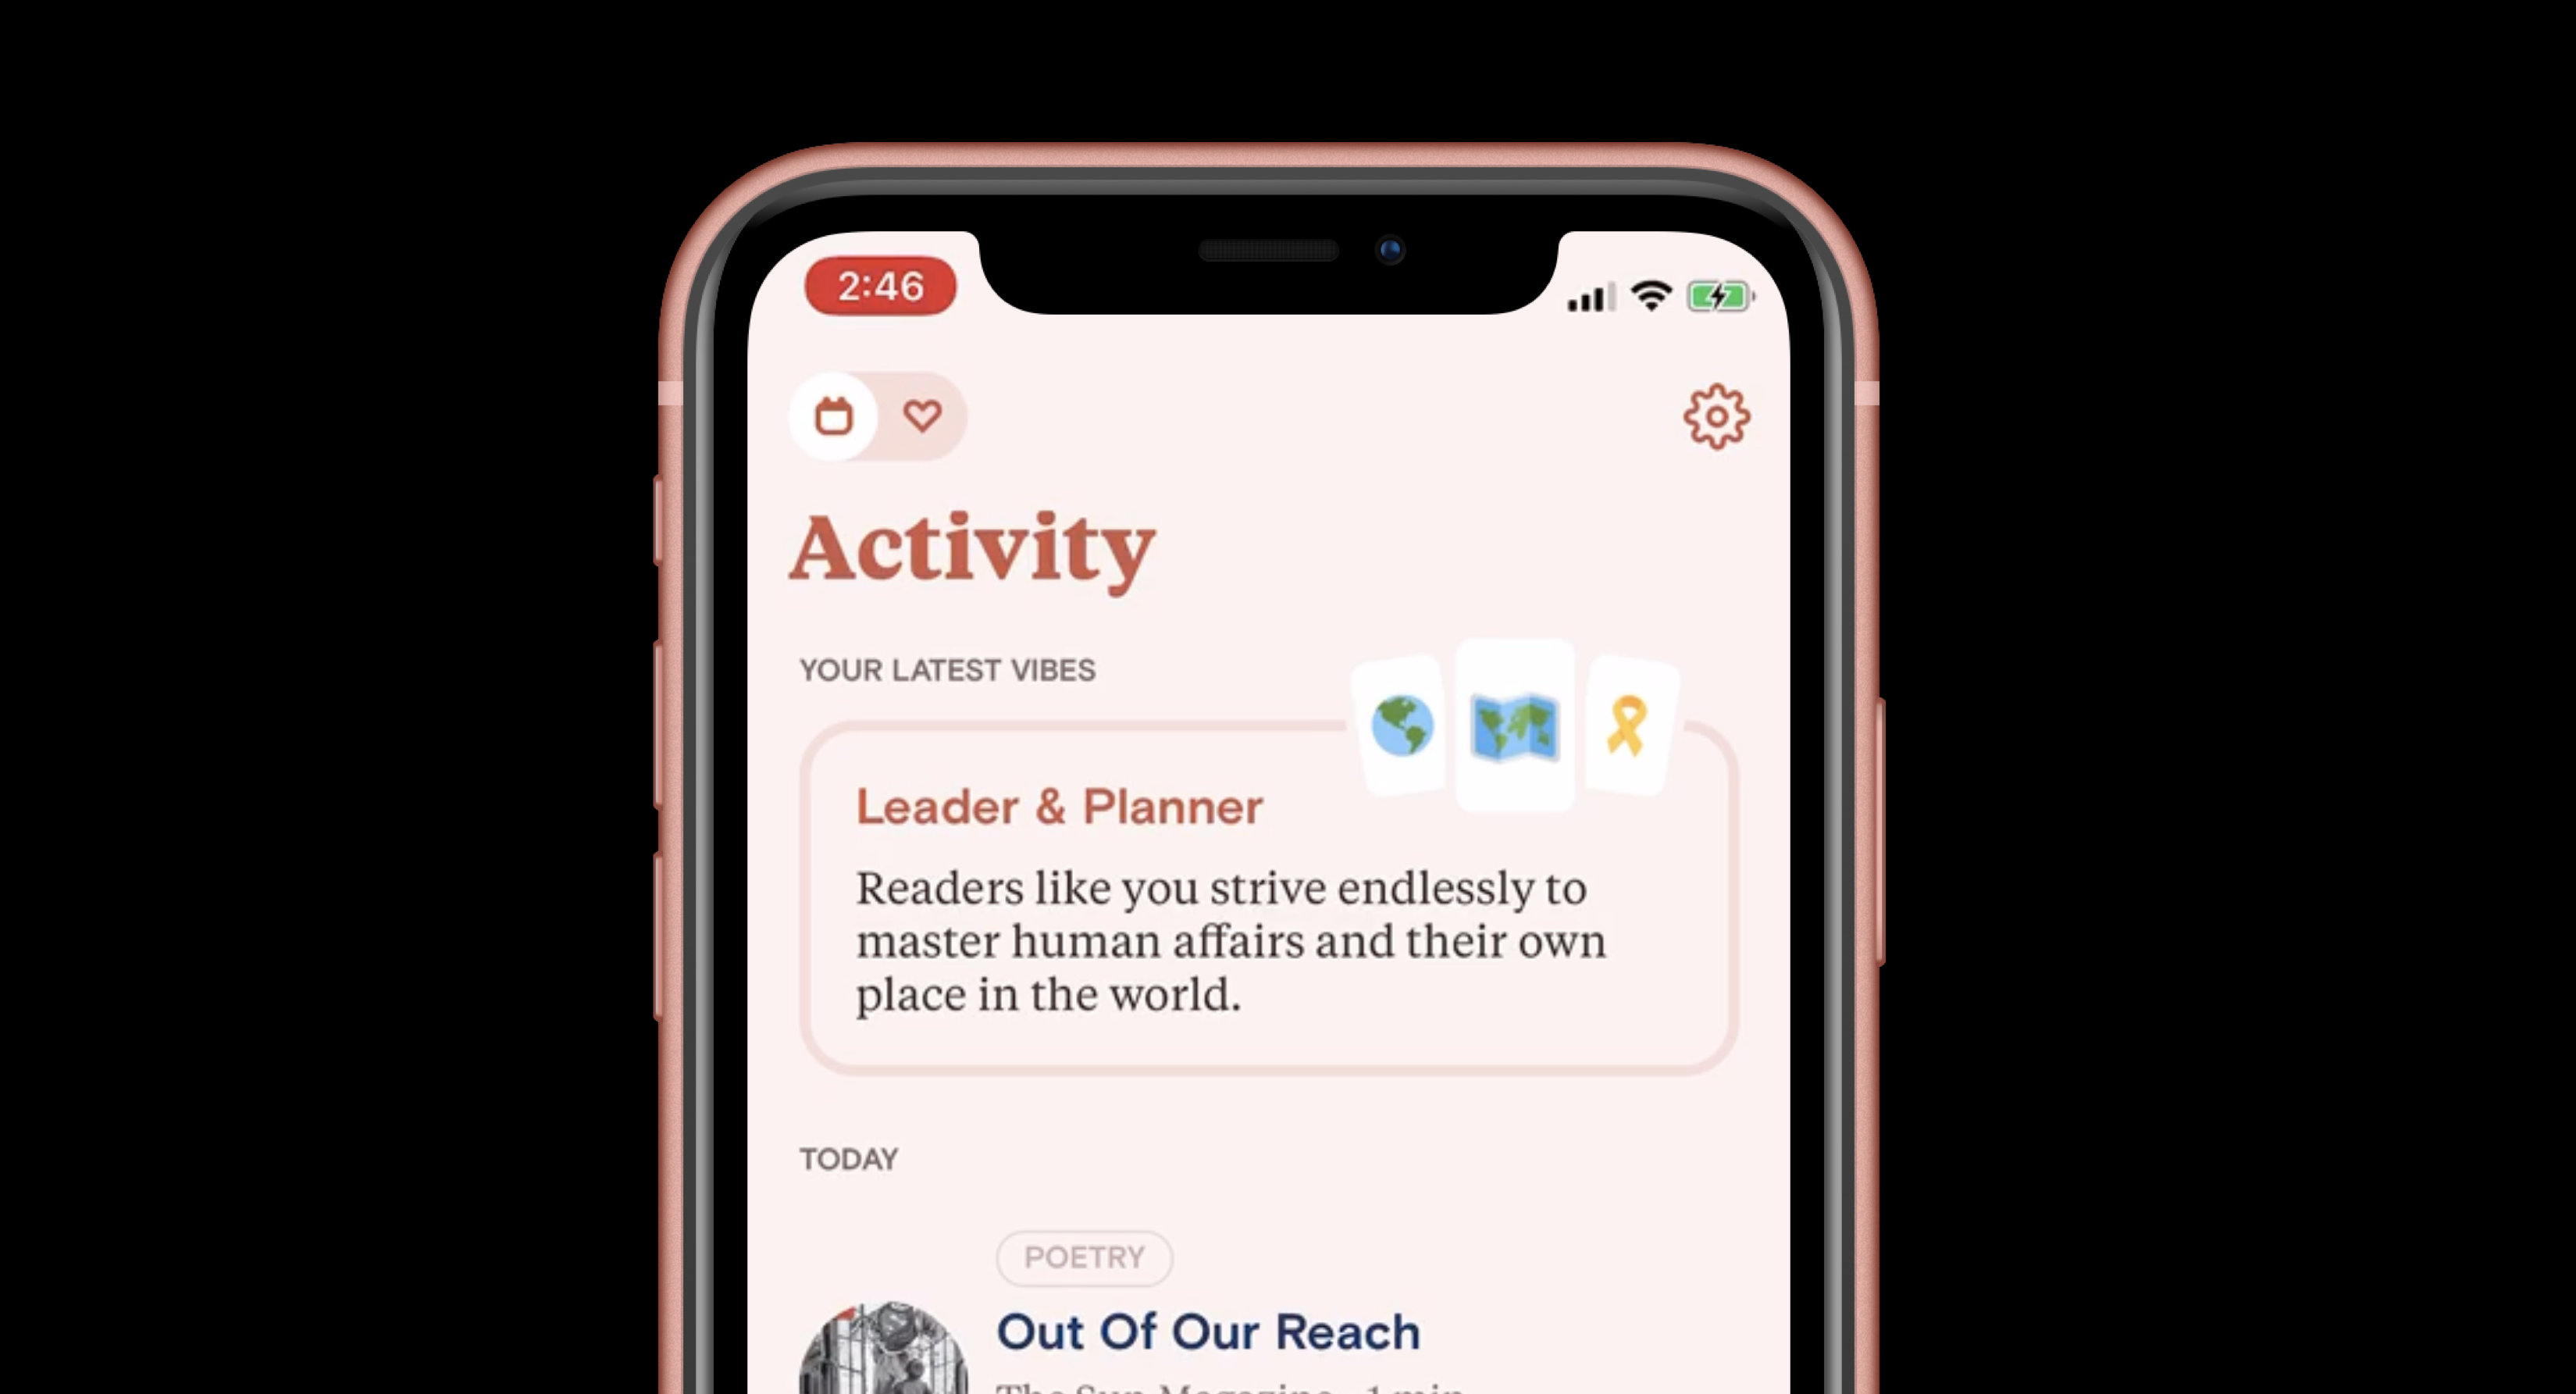 Close up of the Vibes section of the Activity tab